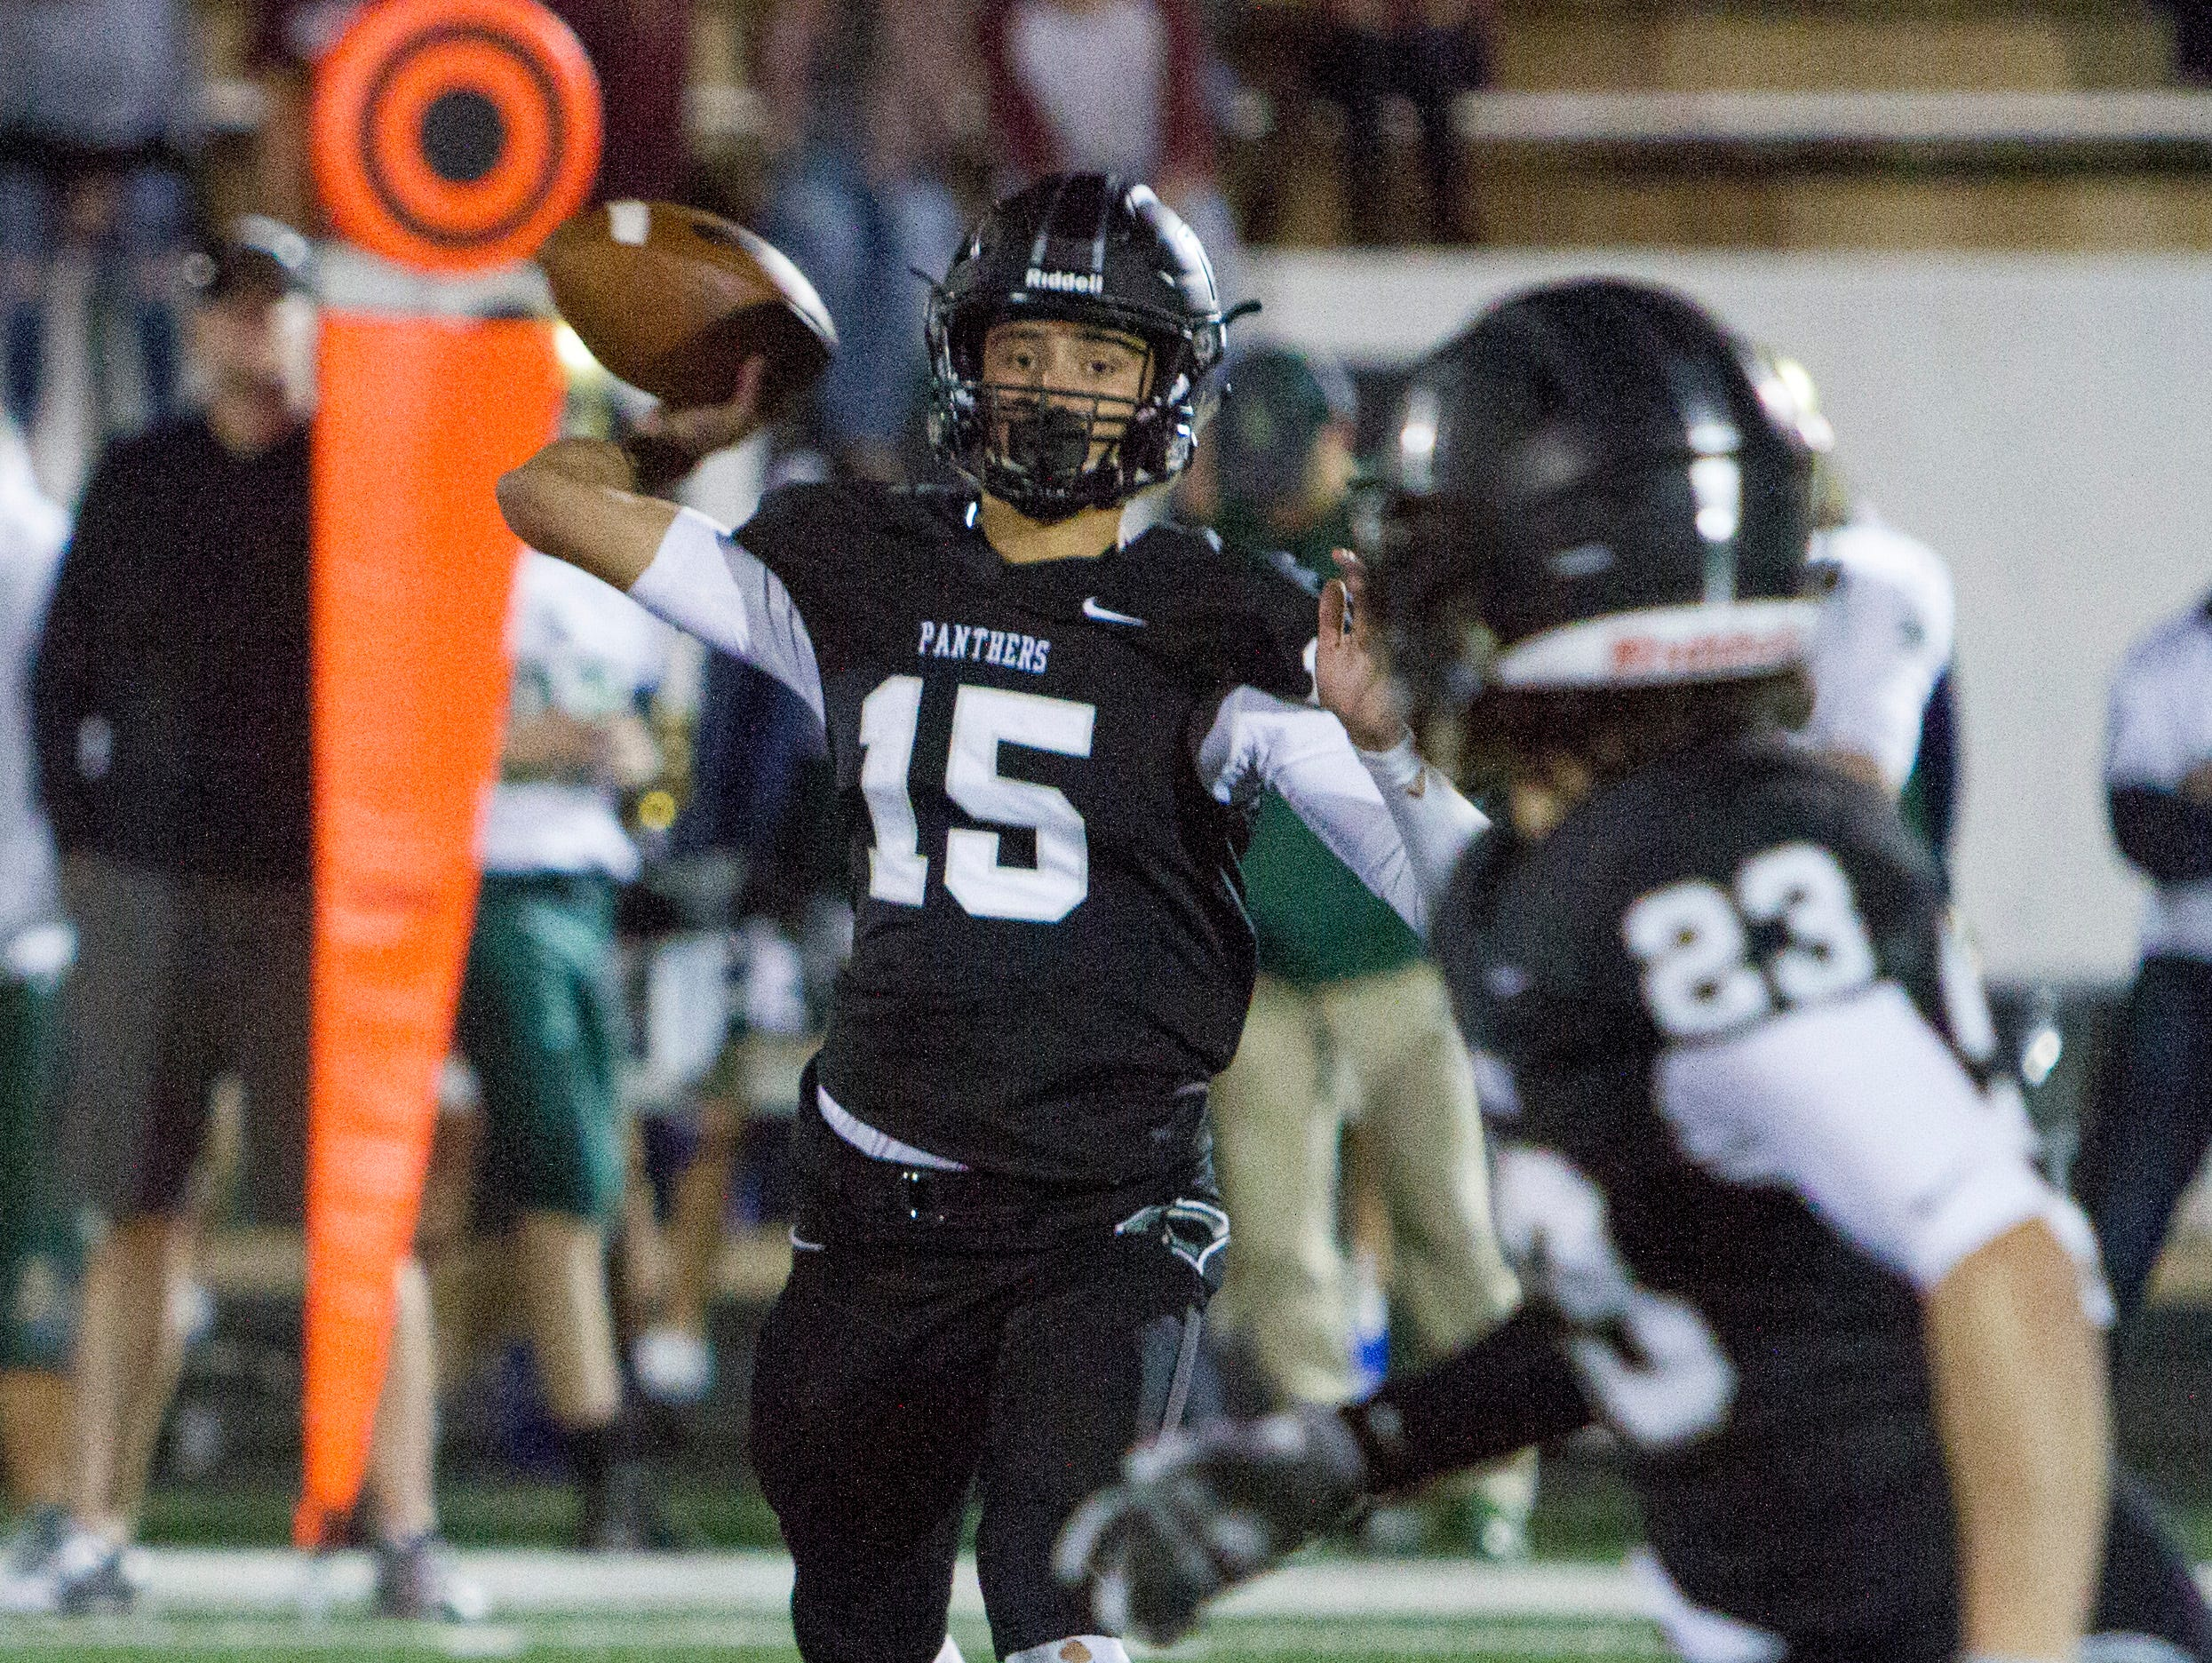 Pine View quarterback Ryan Javines throws to Lance Mandrigues during the Panthers' 13-7 win over Snow Canyon Friday, Sept. 23, 2016.